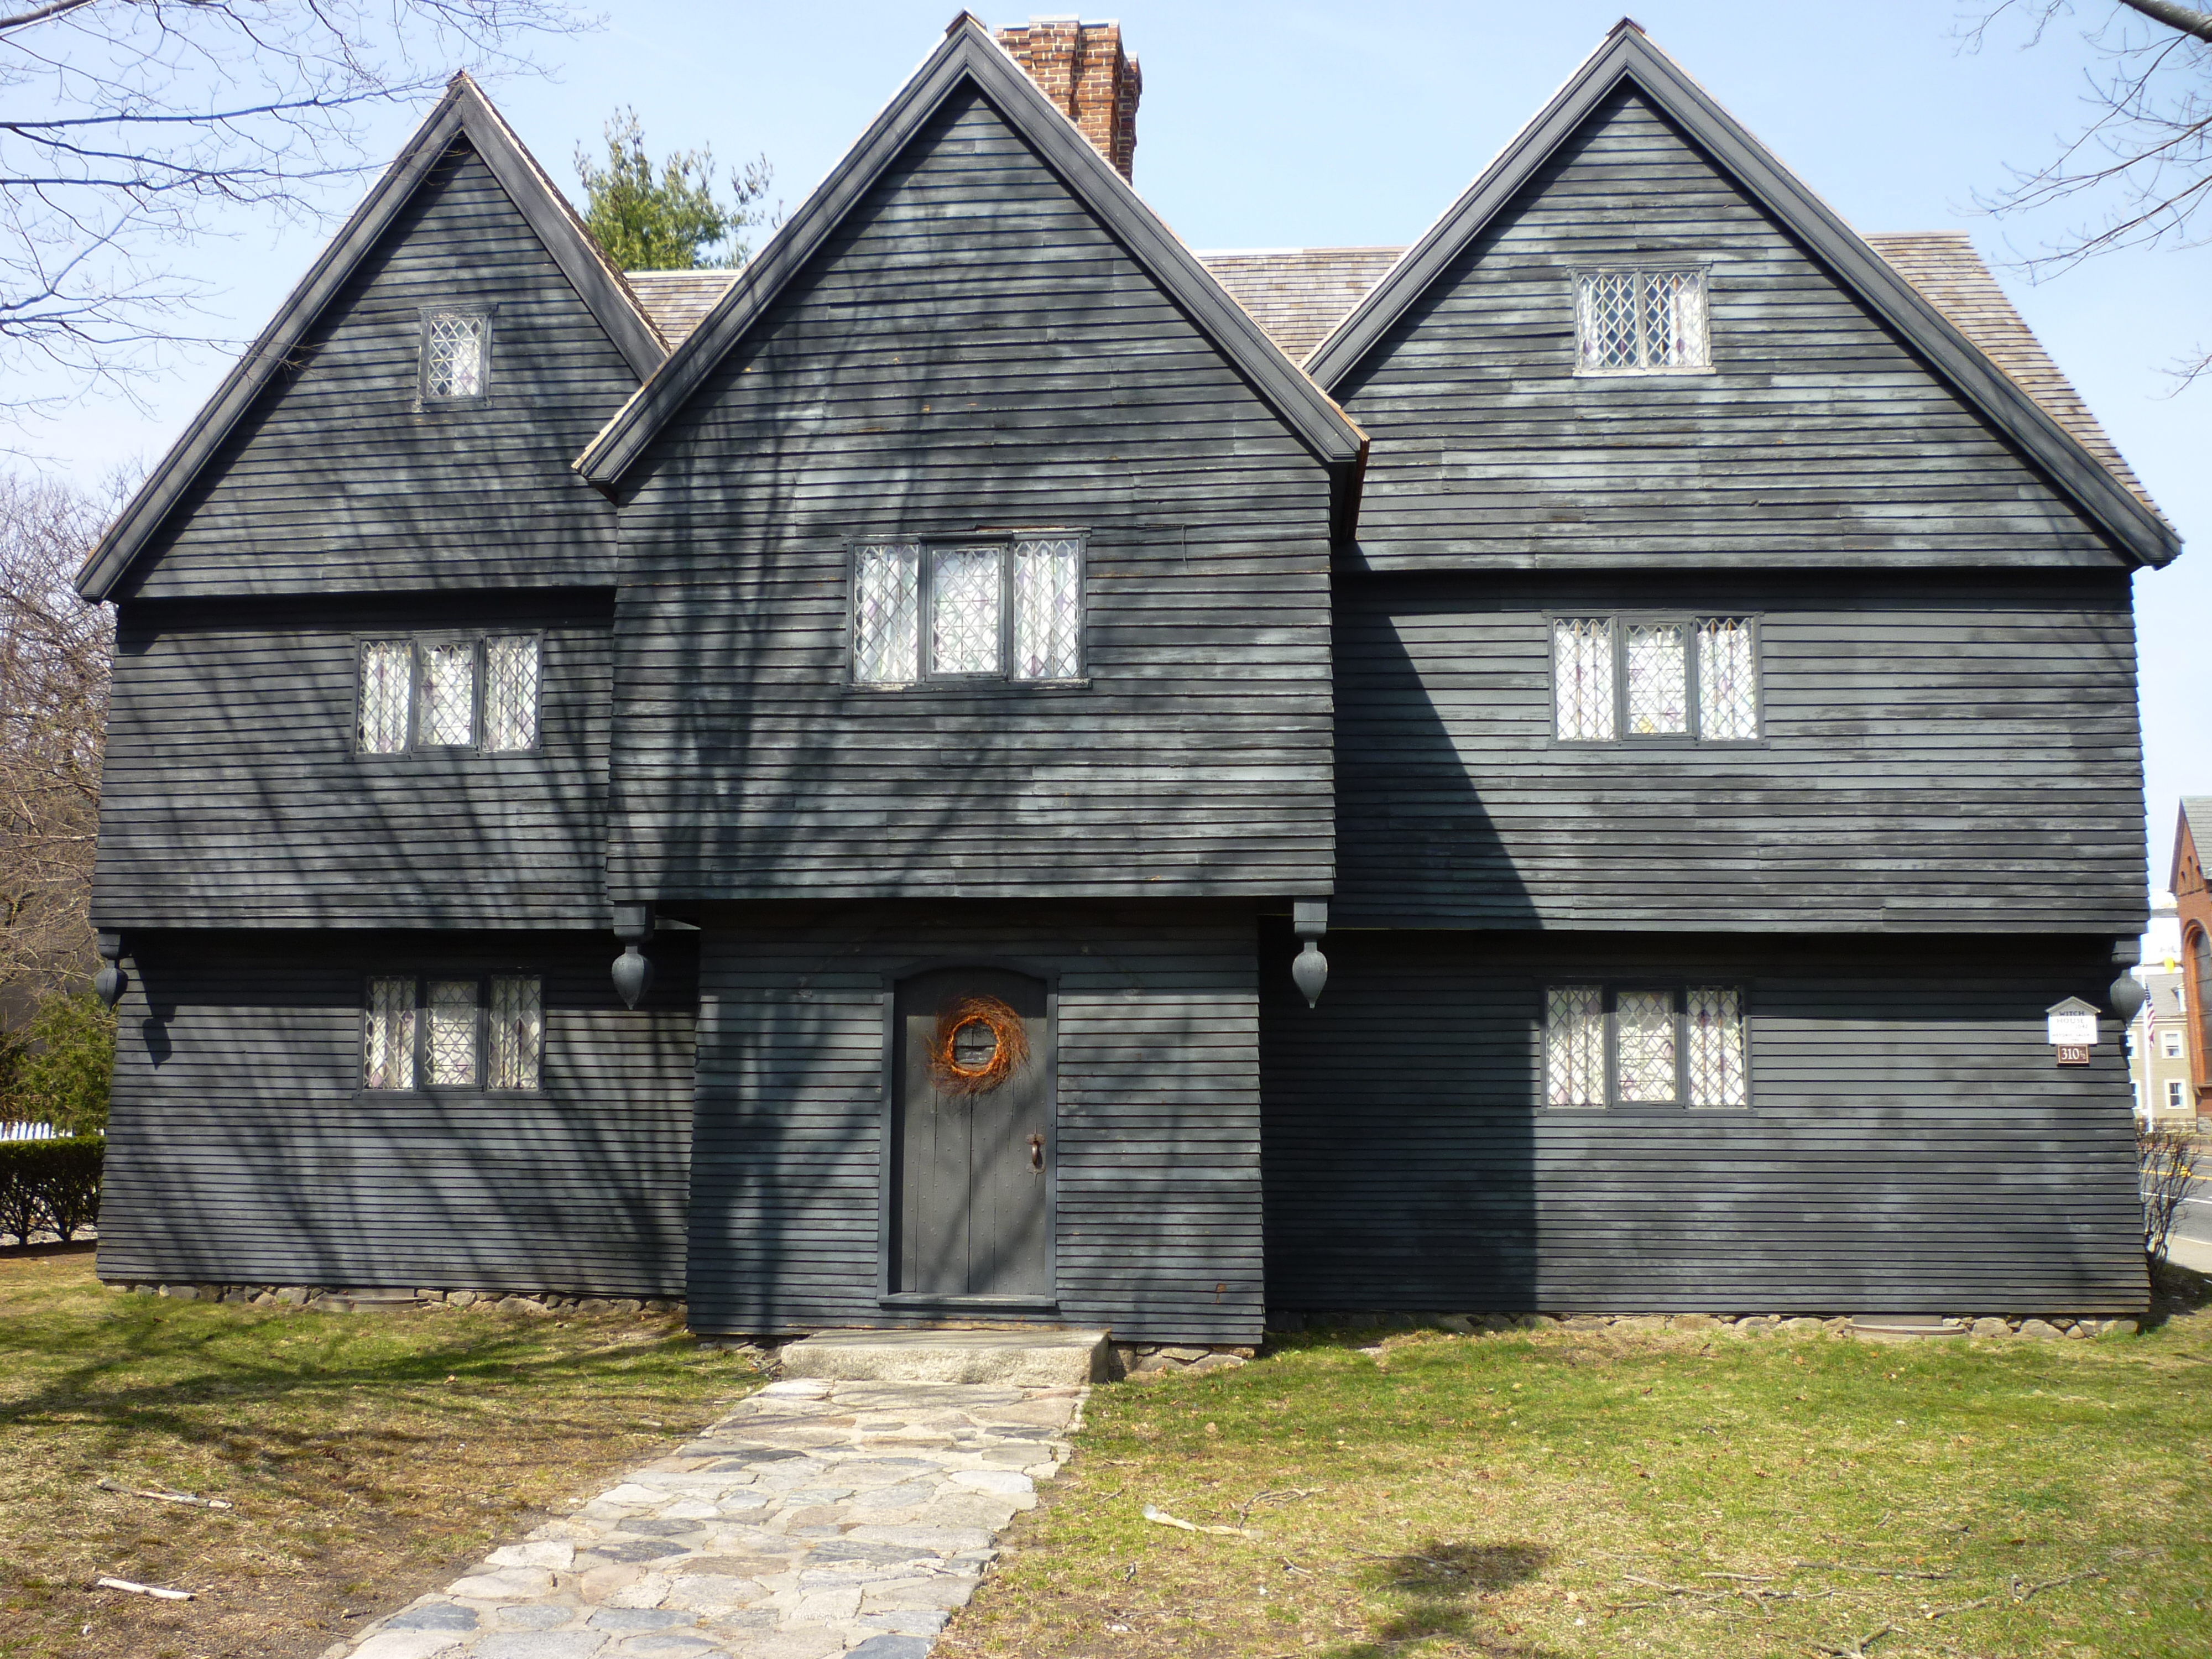 File:The Witch House.jpg